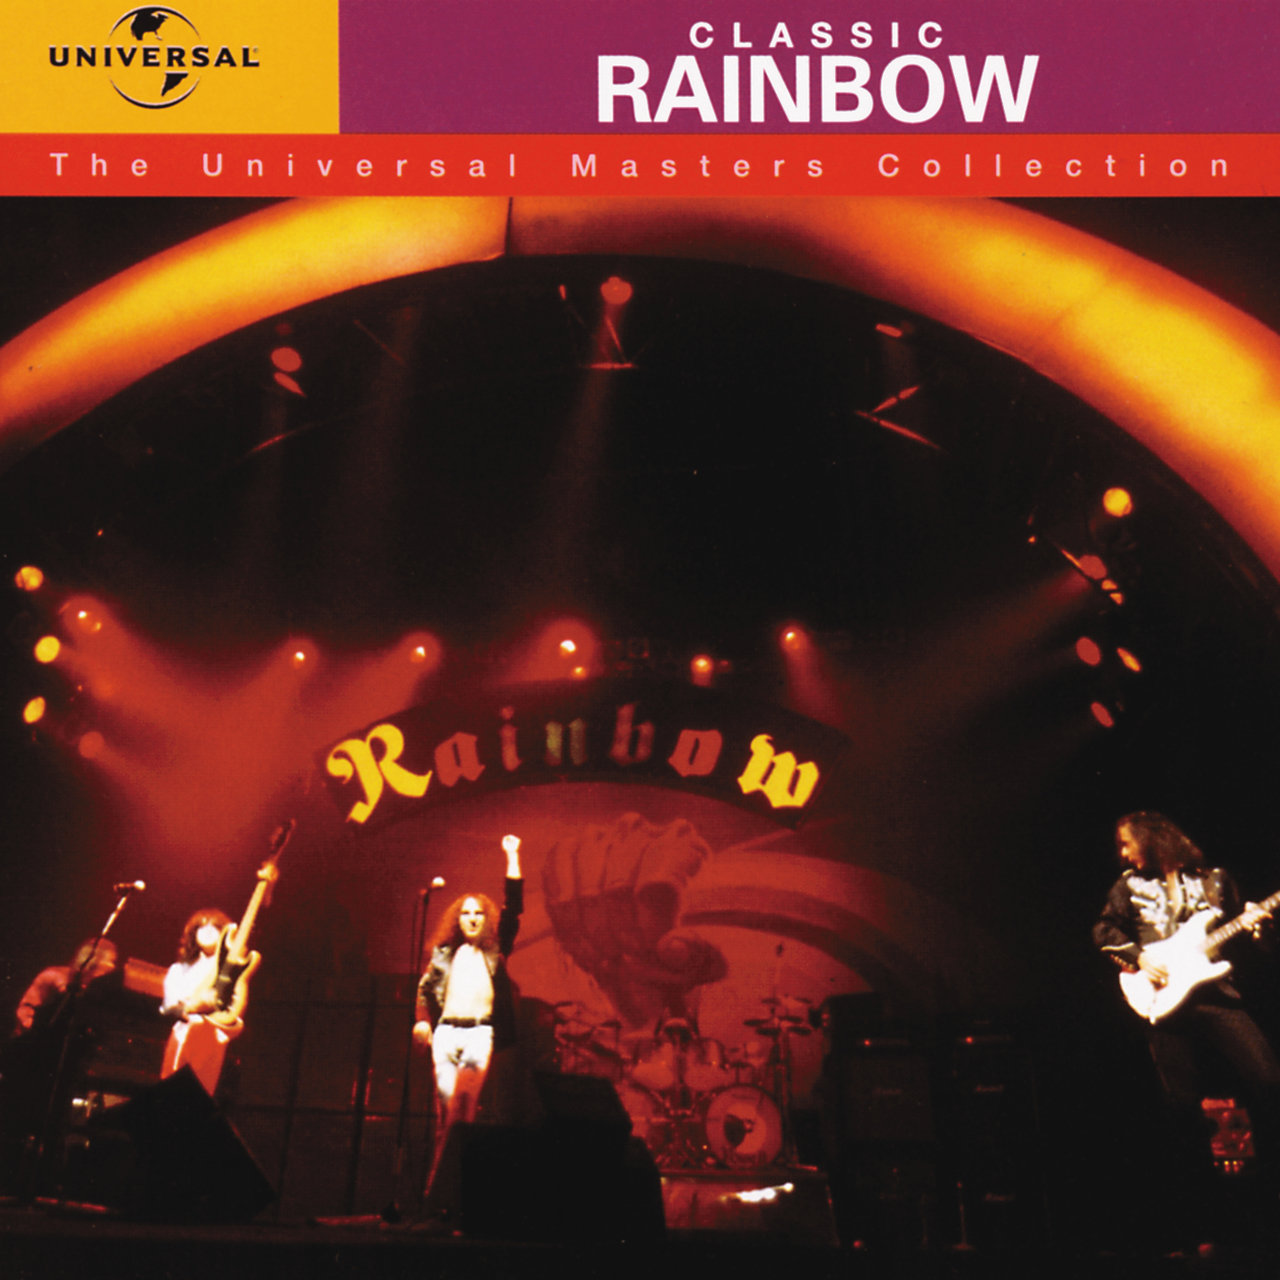 Classic Rainbow - Universal Masters Collection